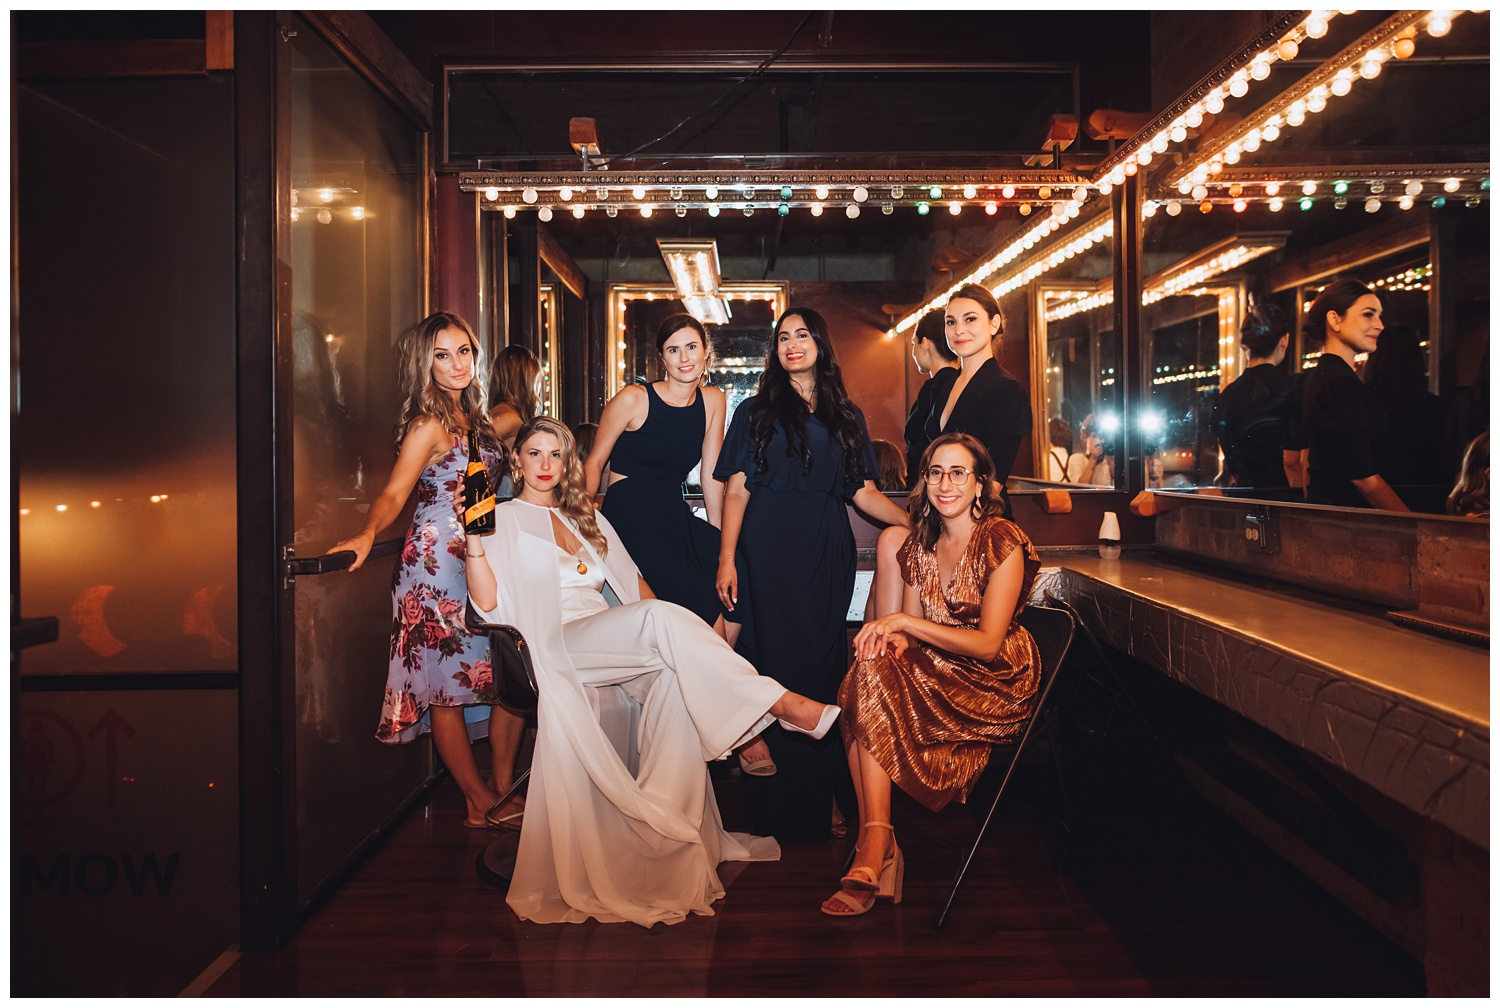 Lacuna Lofts Chicago Wedding Photography - The Adamkovi, bride with a cape photos vogue with her bridesmaids